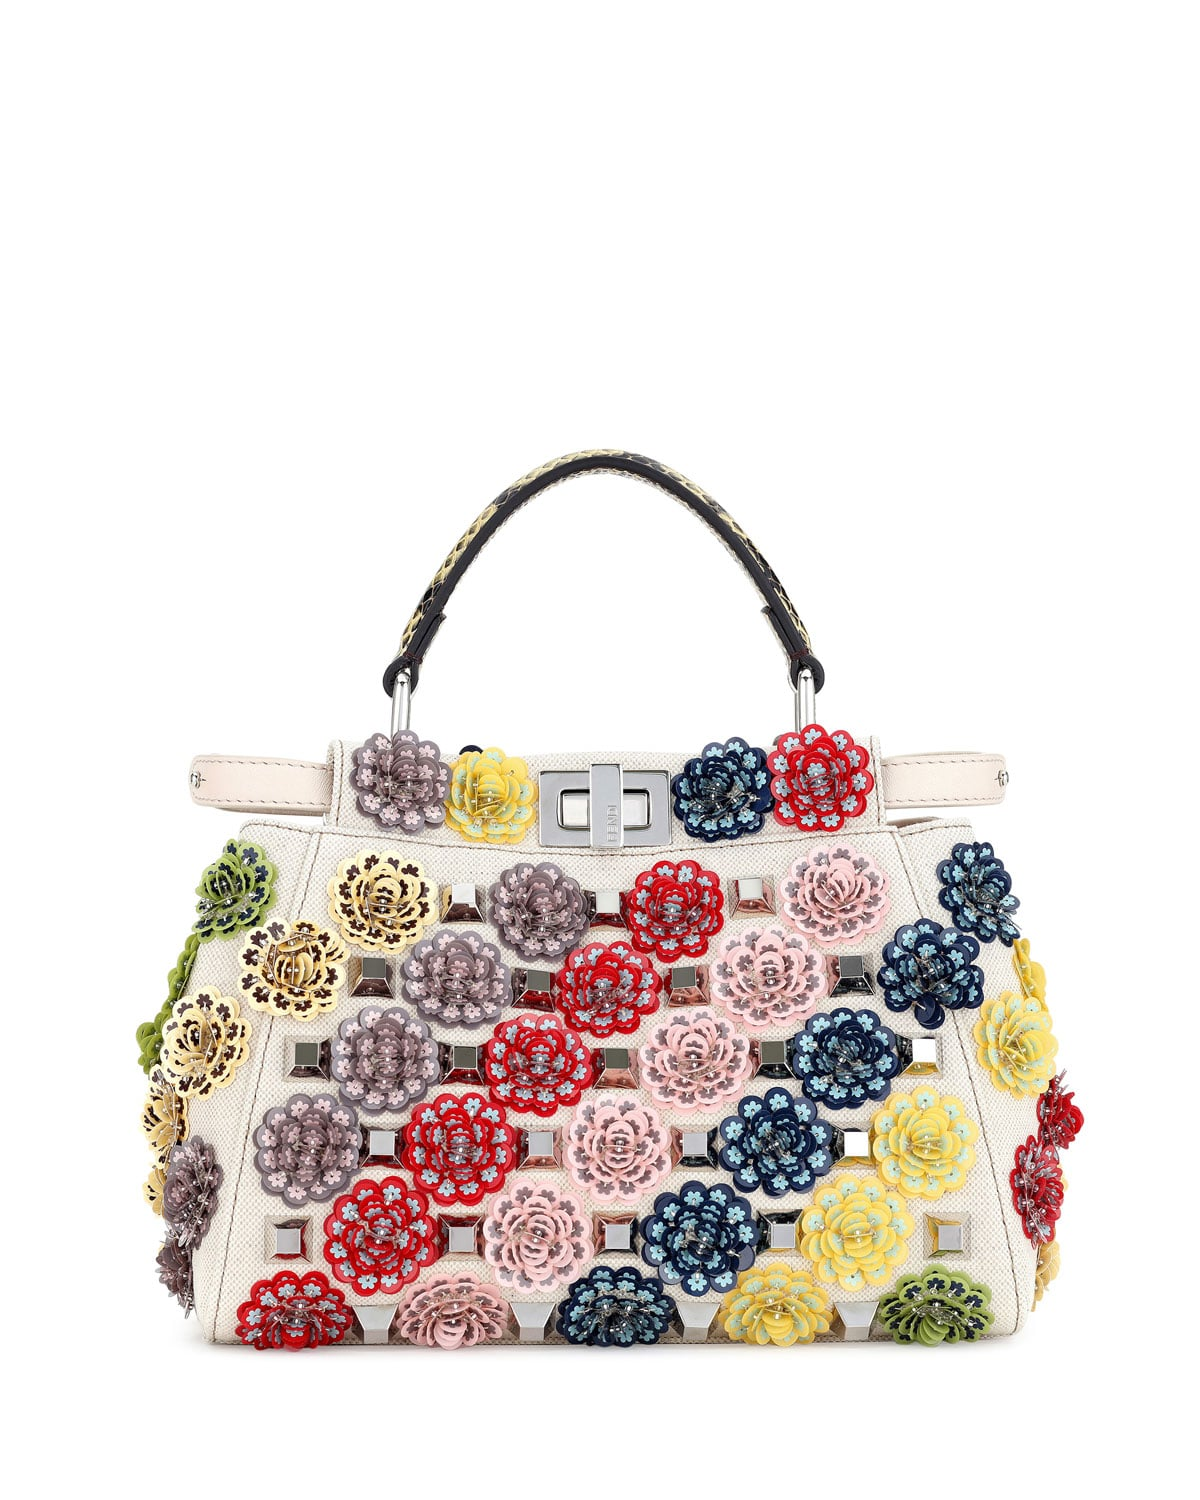 e50431d3dbc Fendi Resort 2017 Bag Collection Featuring Floral Bags | Spotted Fashion